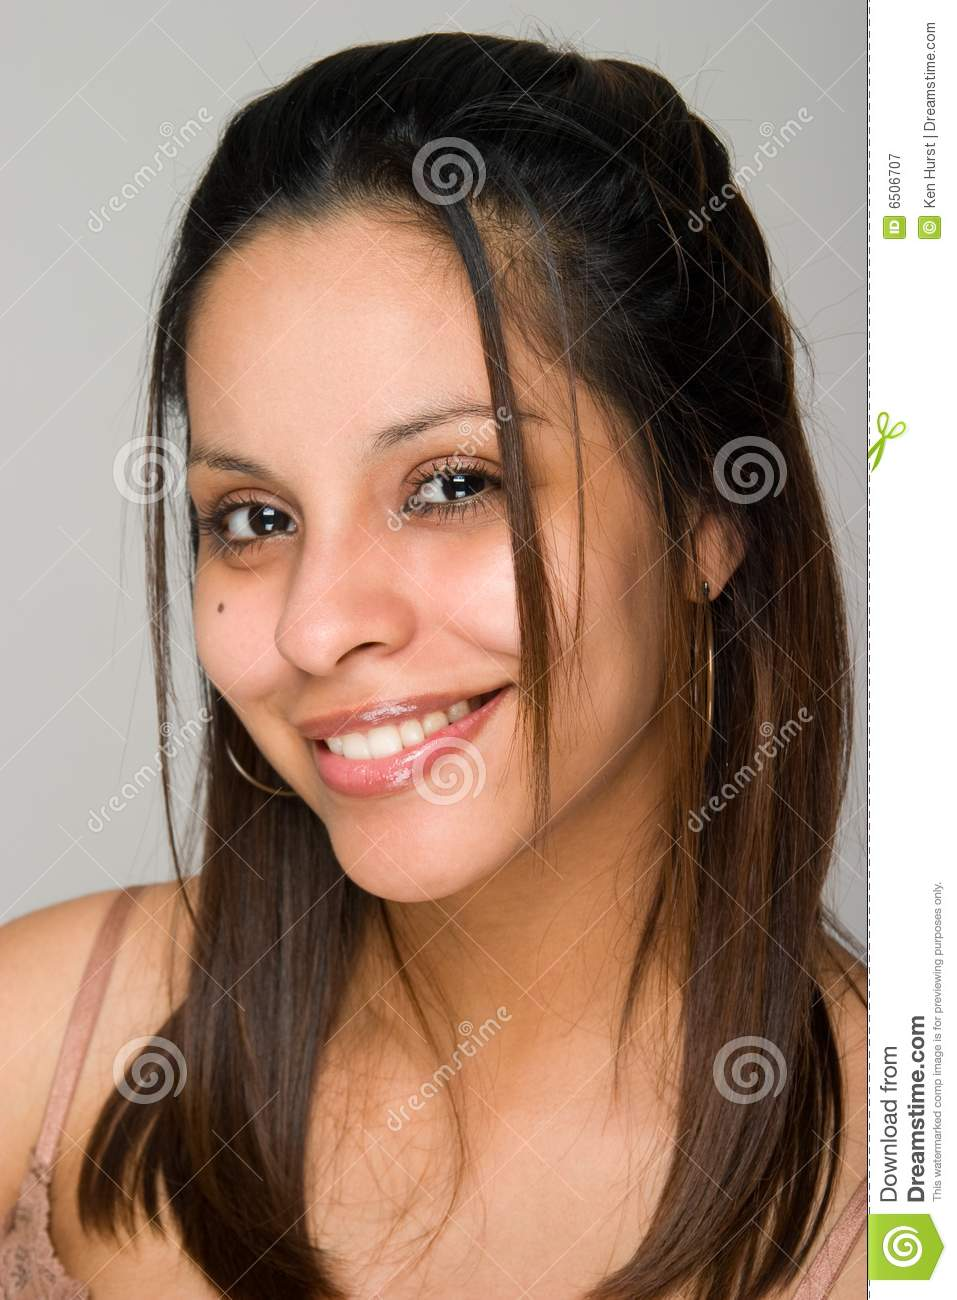 Exotic Beauty Royalty Free Stock Photography Image 6506707